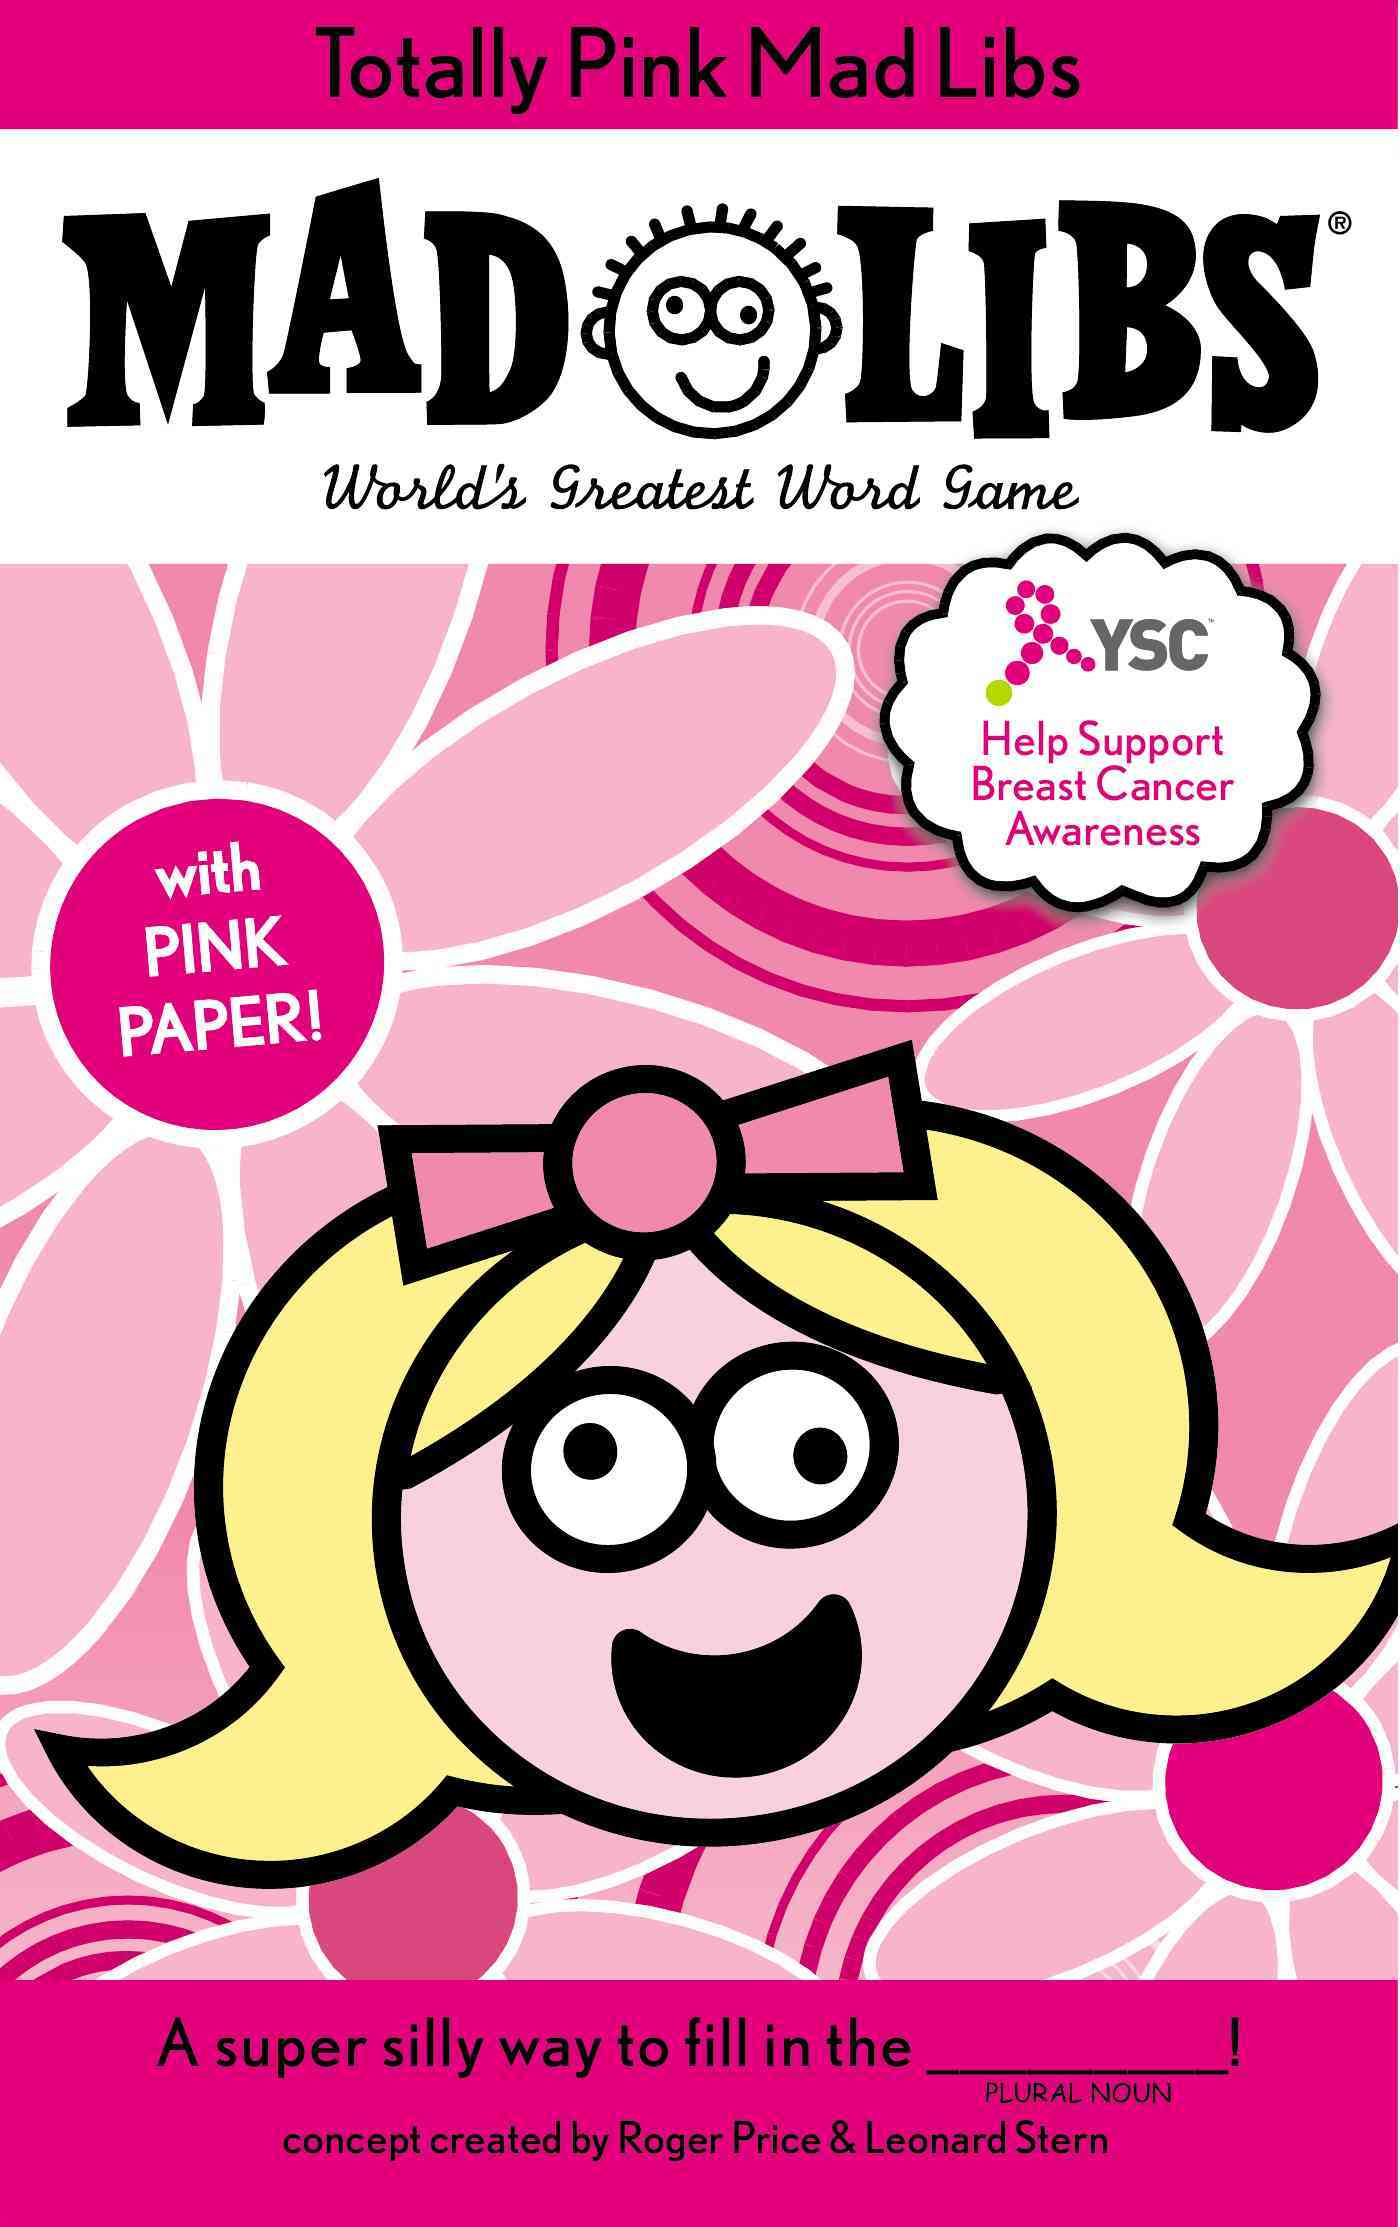 Totally Pink Mad Libs (Breast Cancer Awareness): Mad Libs World's Greatest Word Game (Paperback)